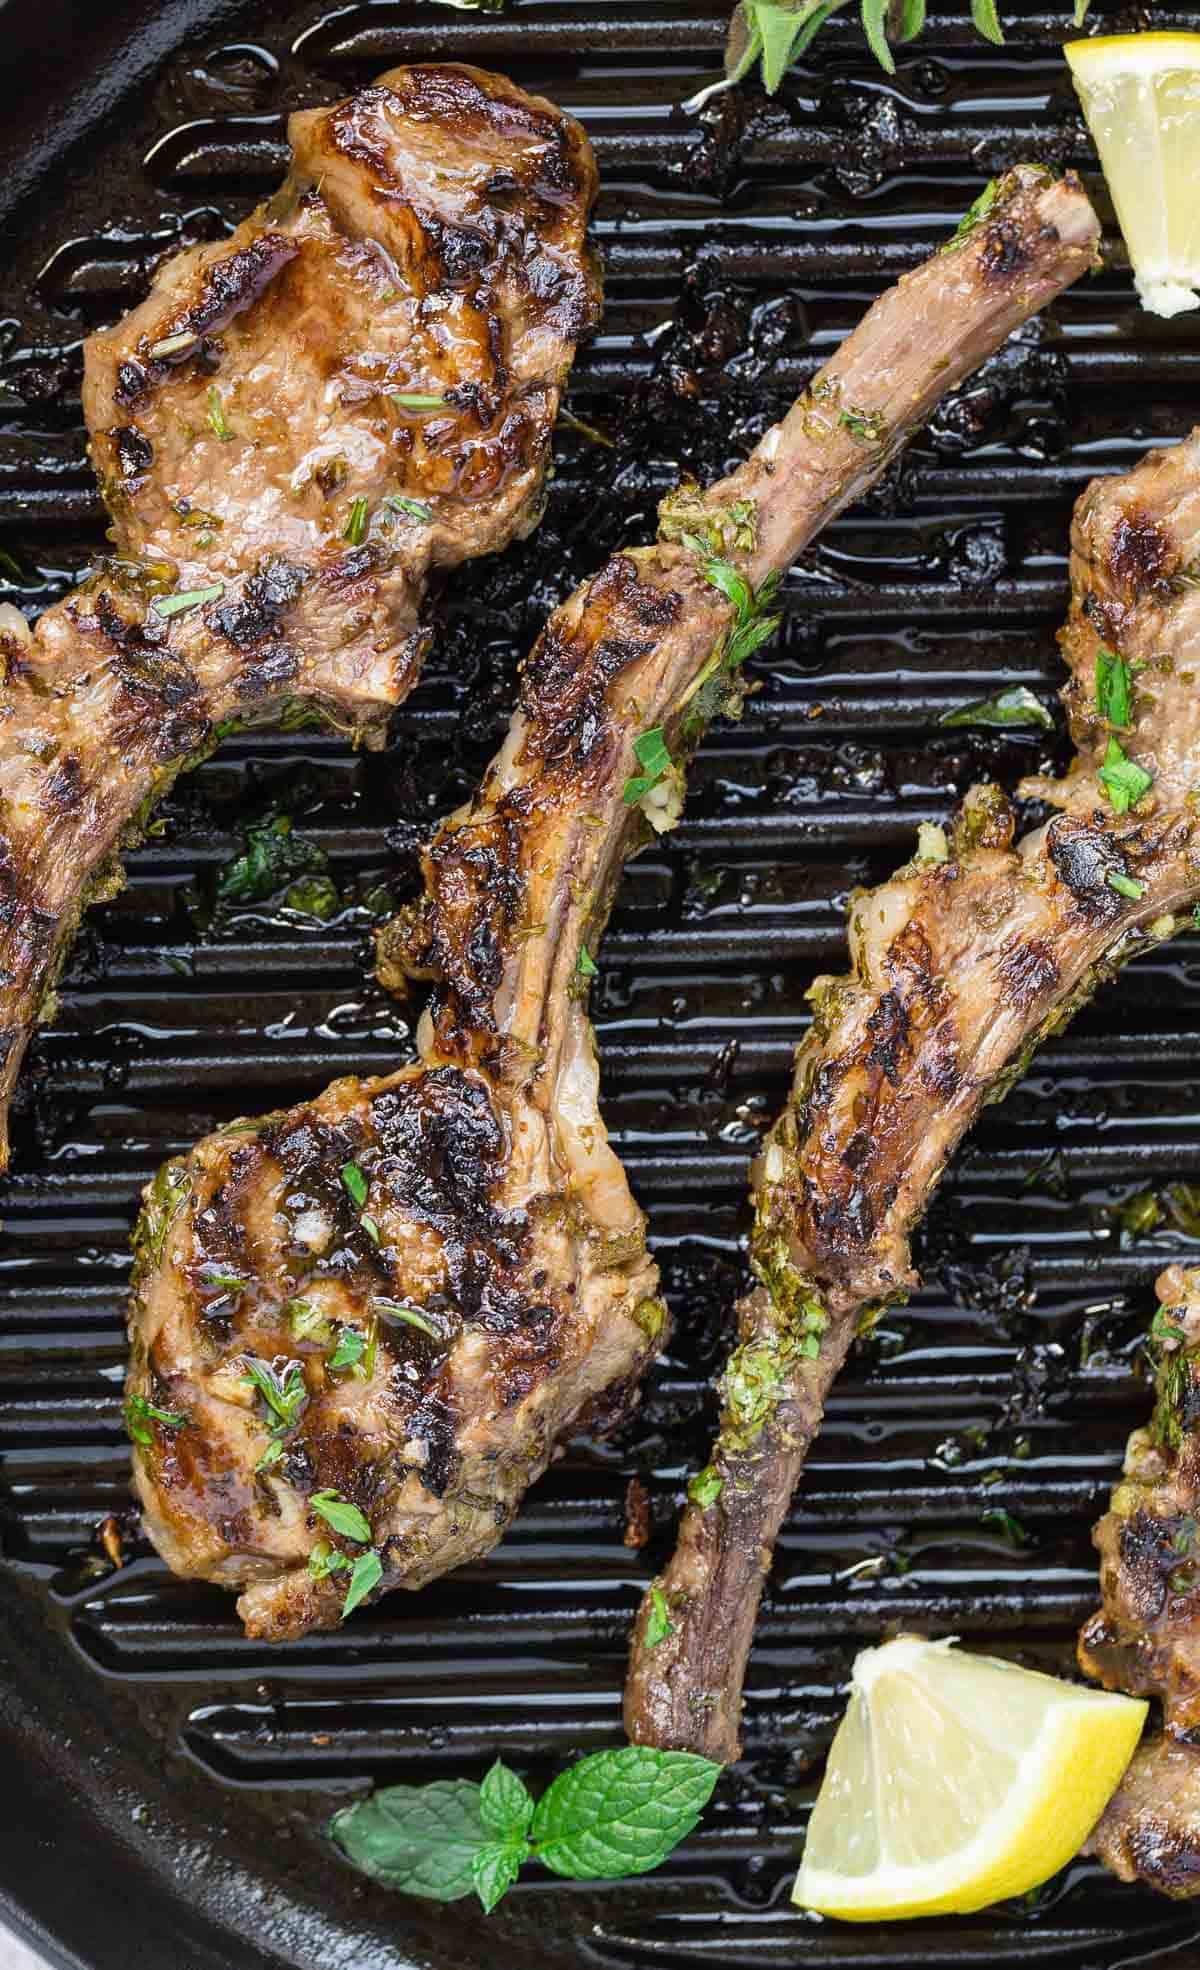 Grilled lamp chops with fresh herbs and lemon wedges.